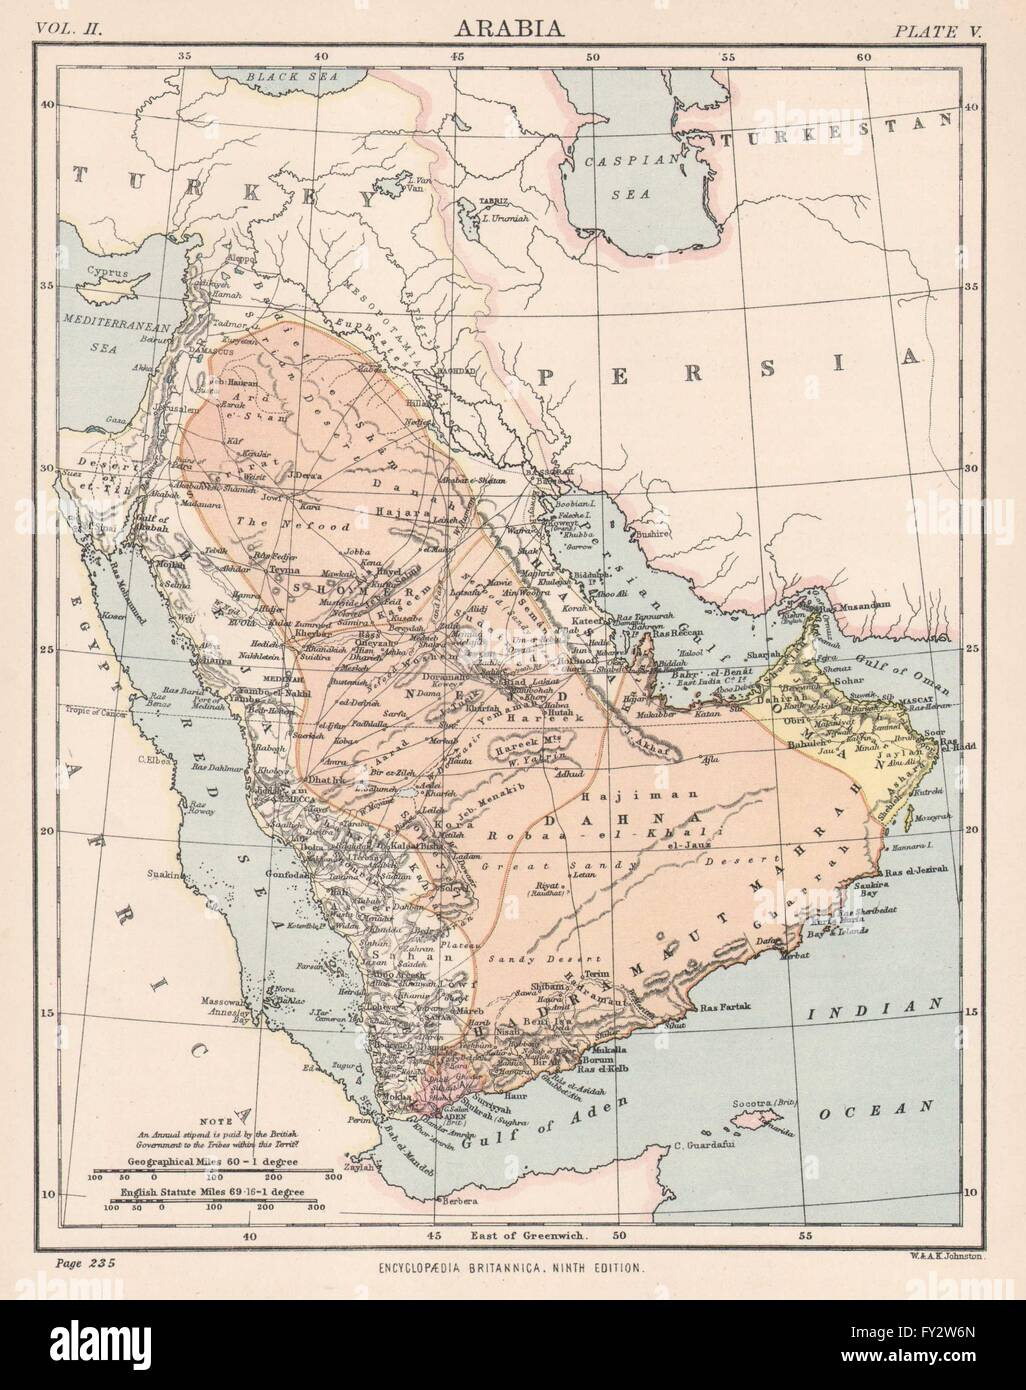 arabia saudi arabia oman aden yemen uae mecca medina 1898 antique map